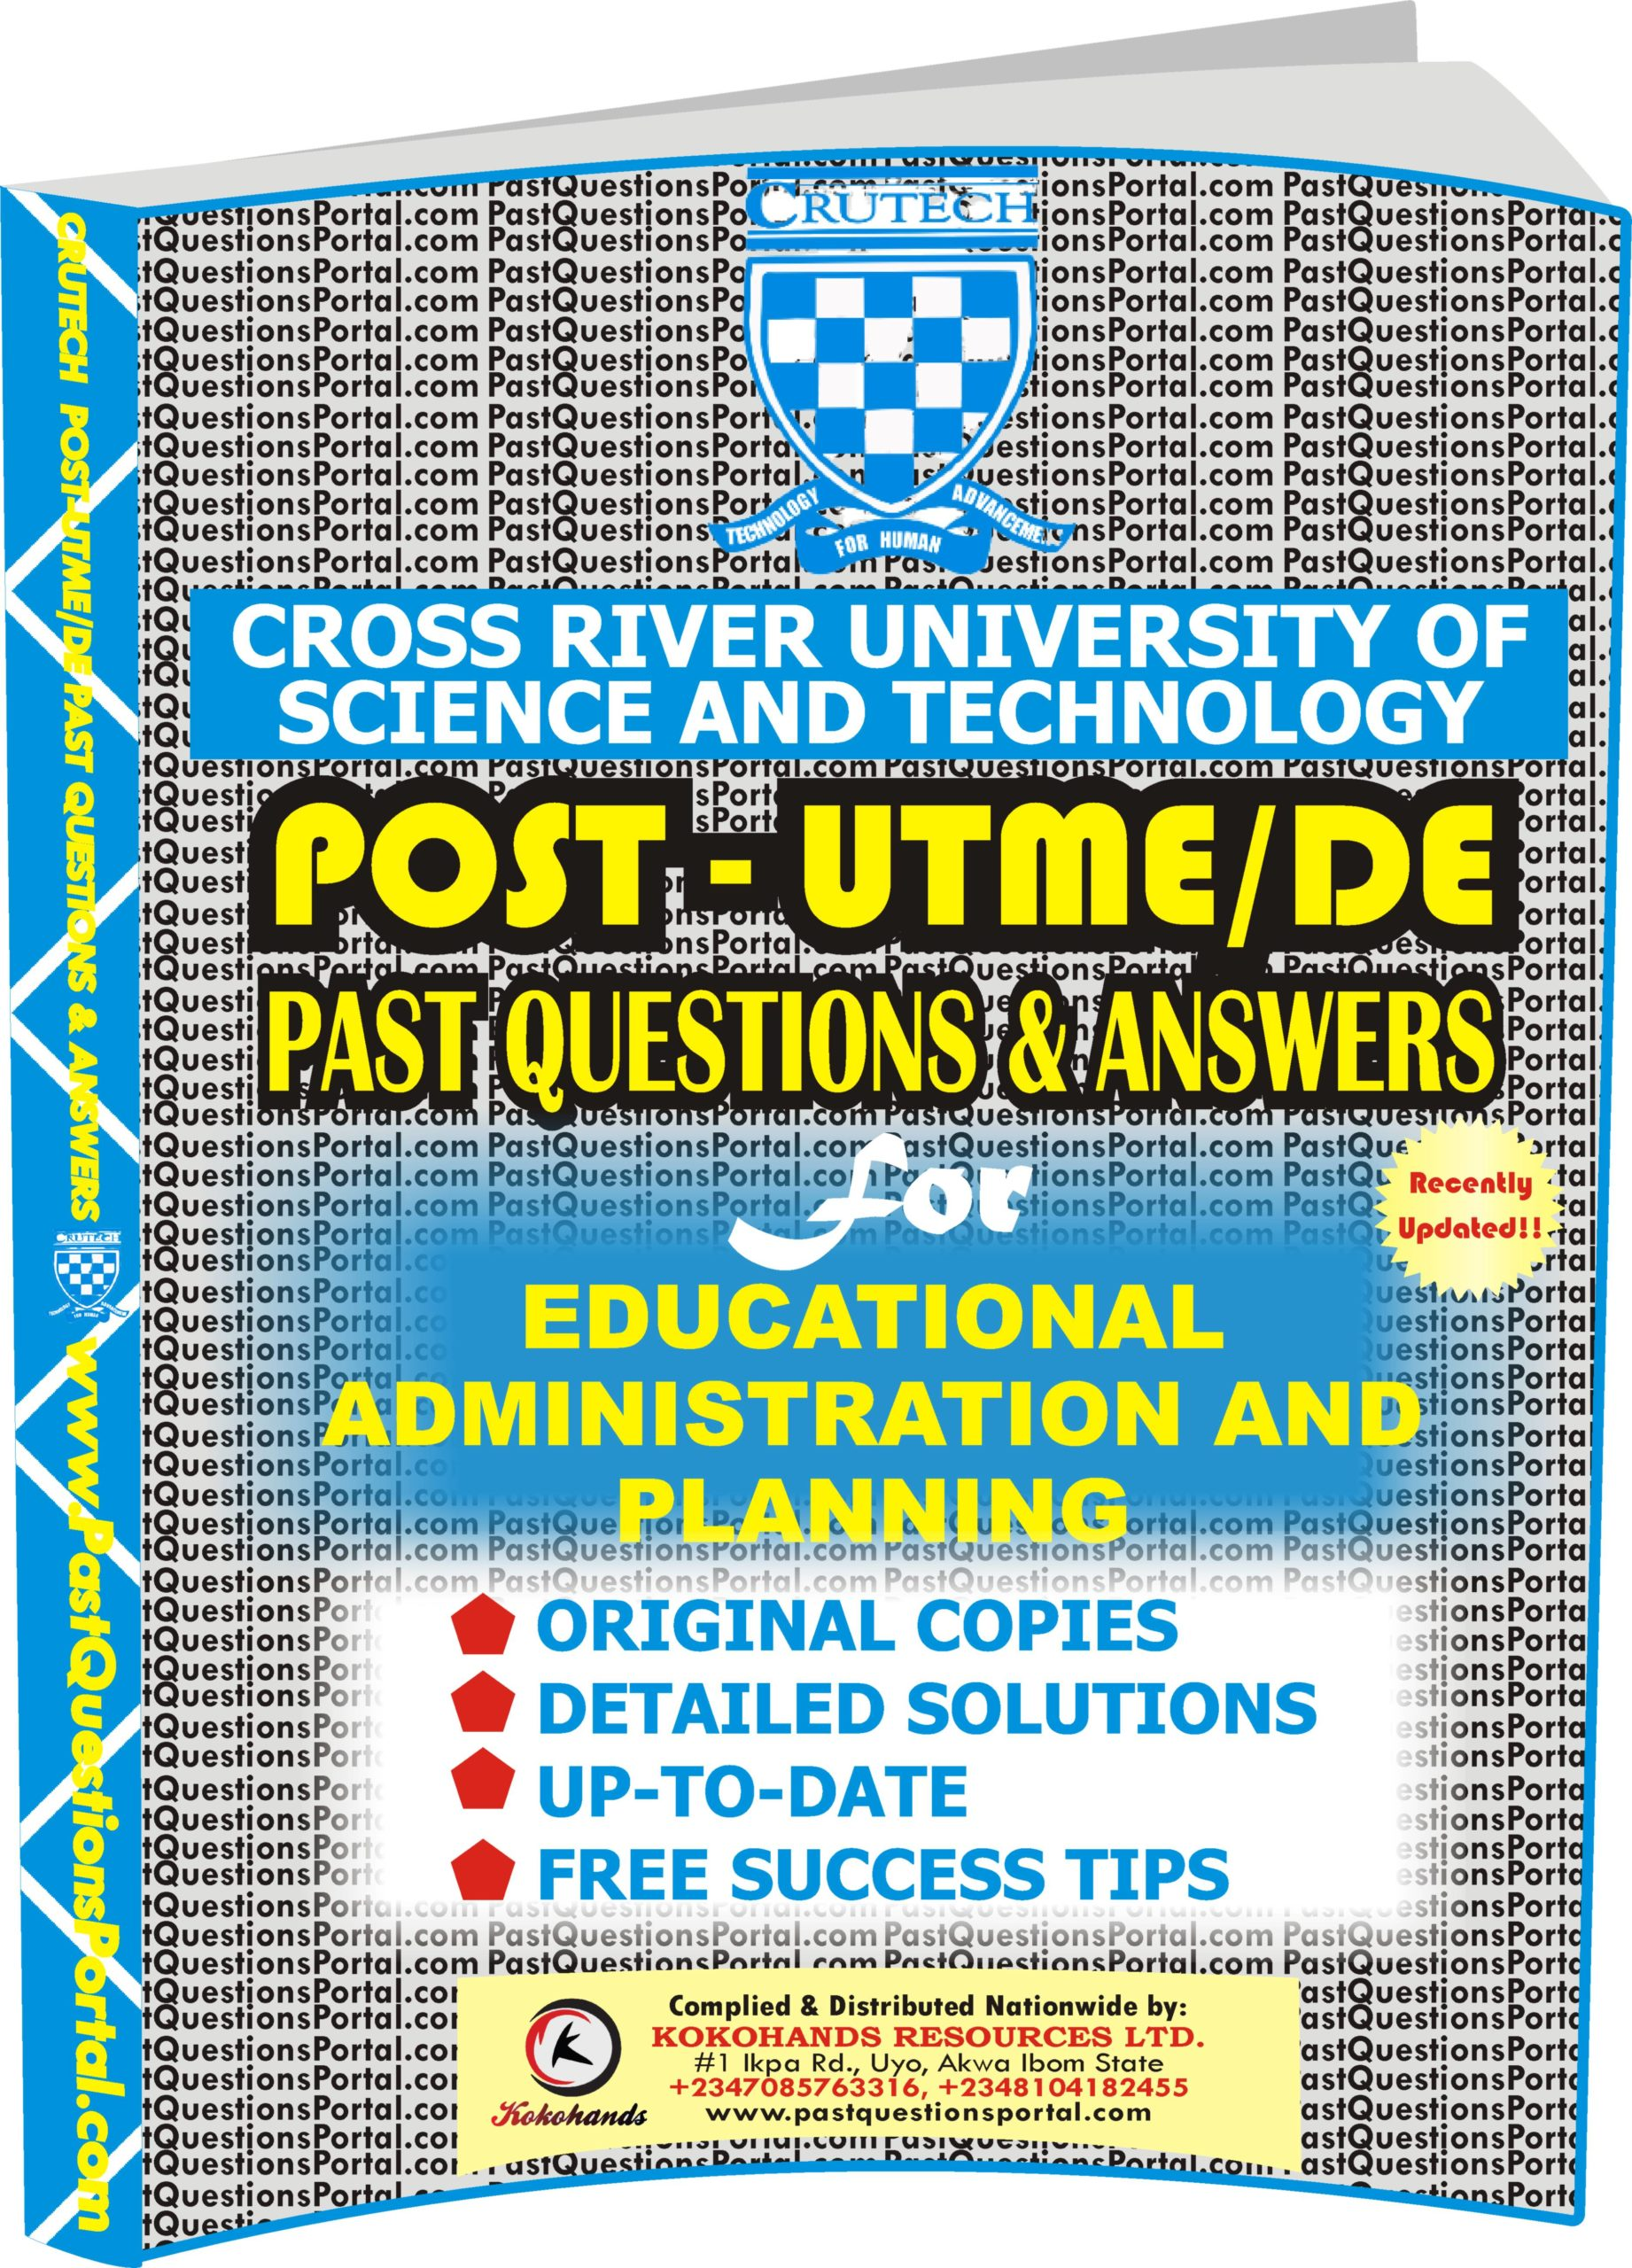 CRUTECH Post UTME Past Questions for Educational Administration and Planning